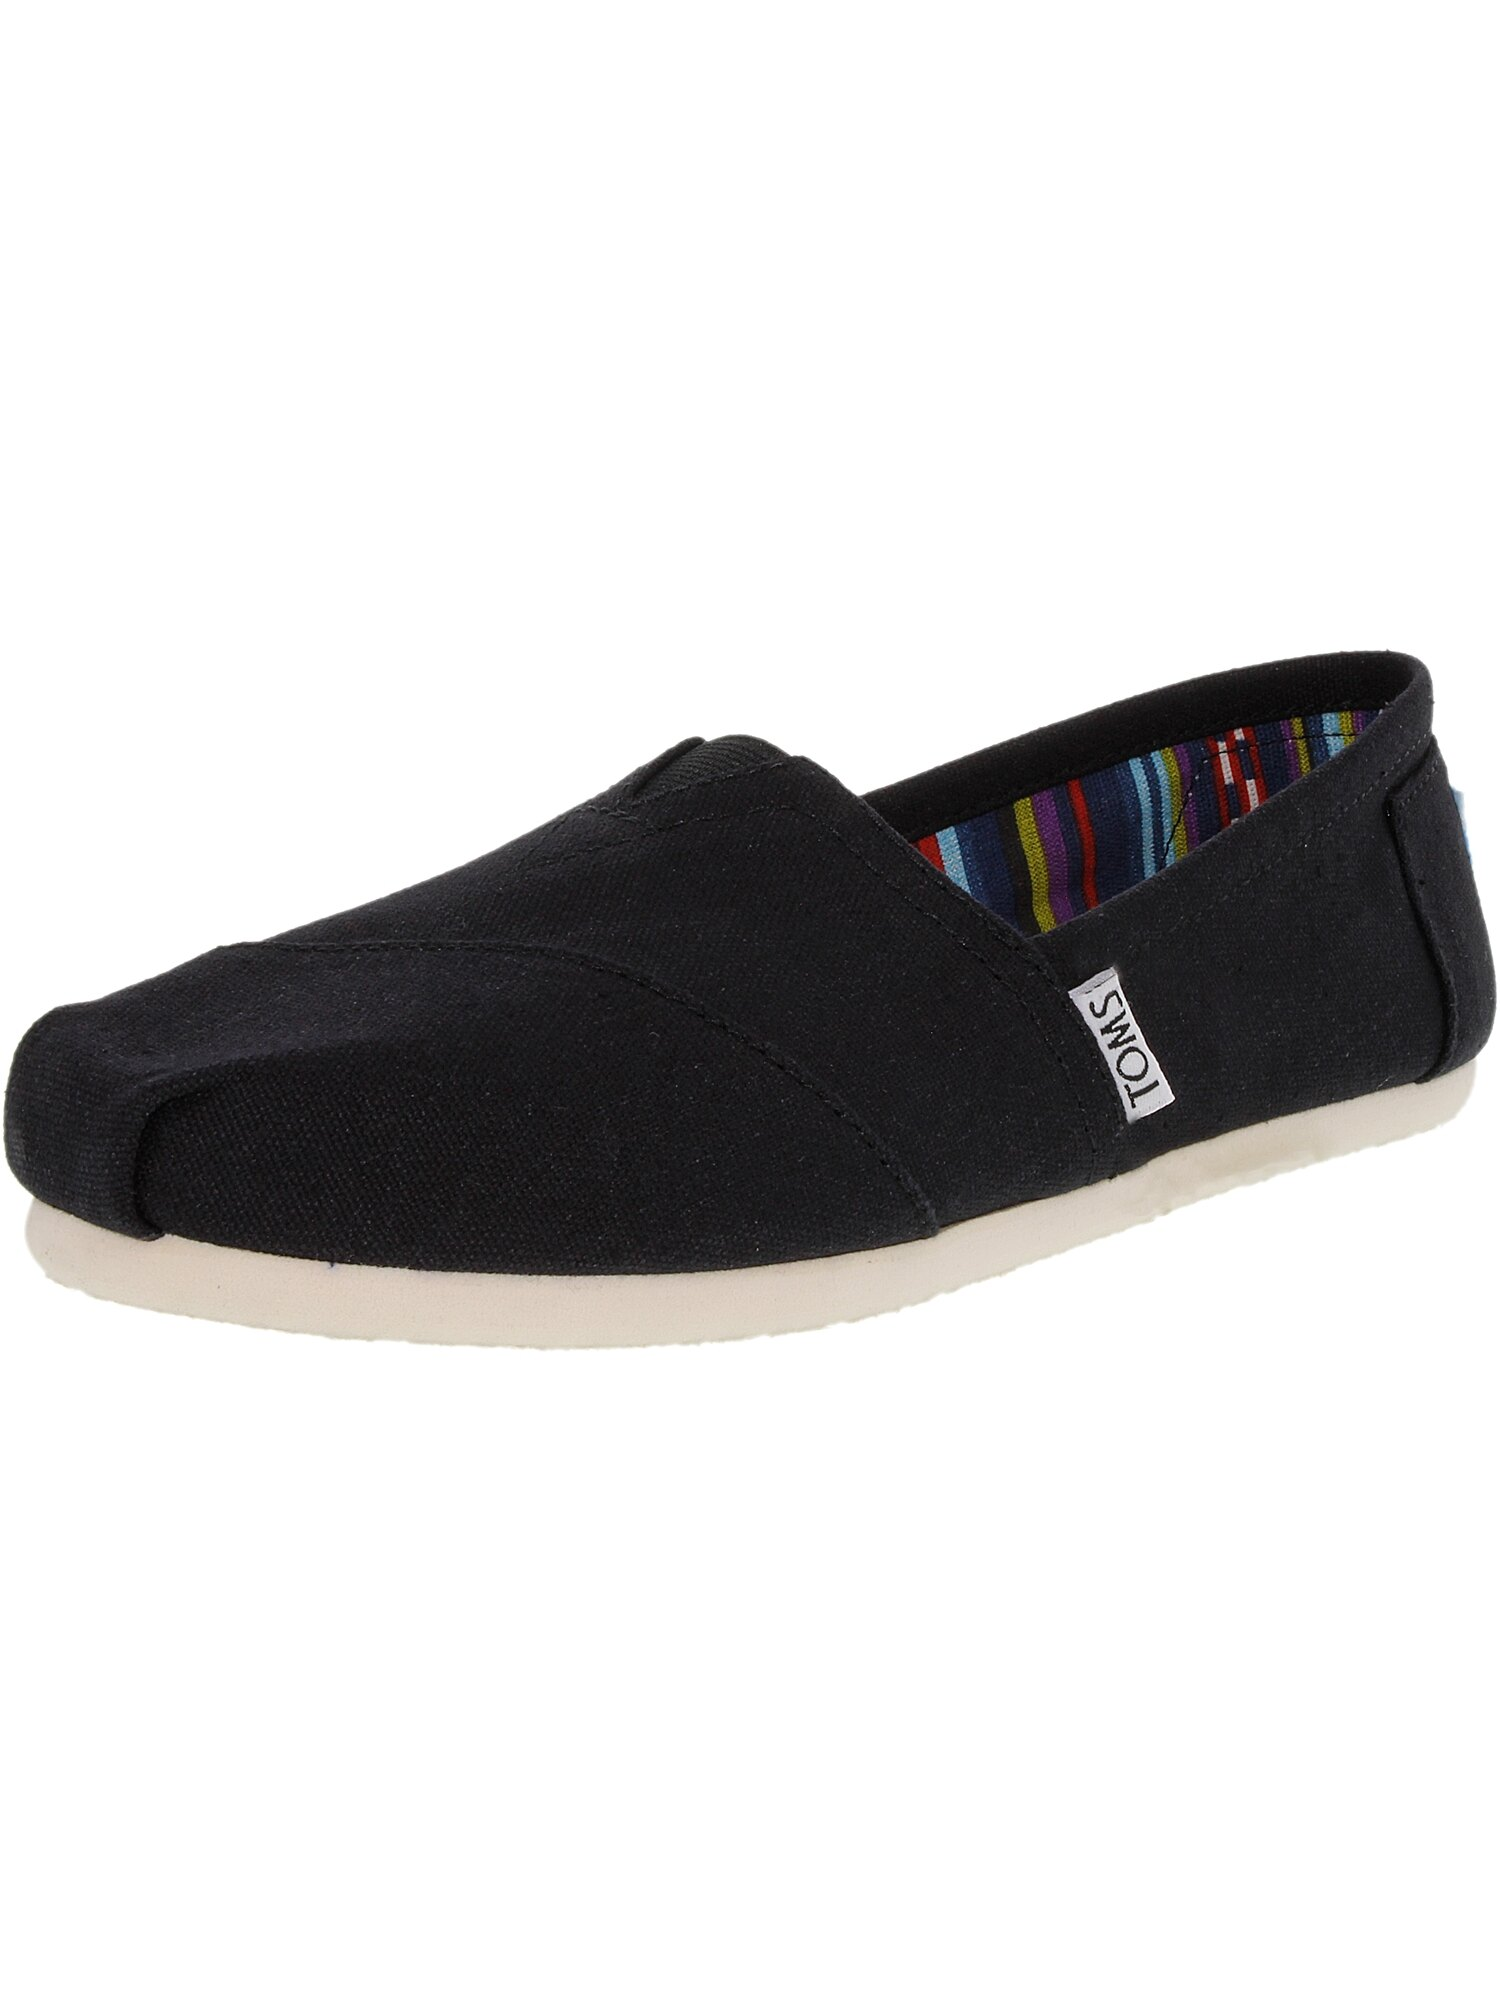 5a382f02c44 AreaTrend  Toms Women s Classic Canvas Ankle-High Flat Shoe ...